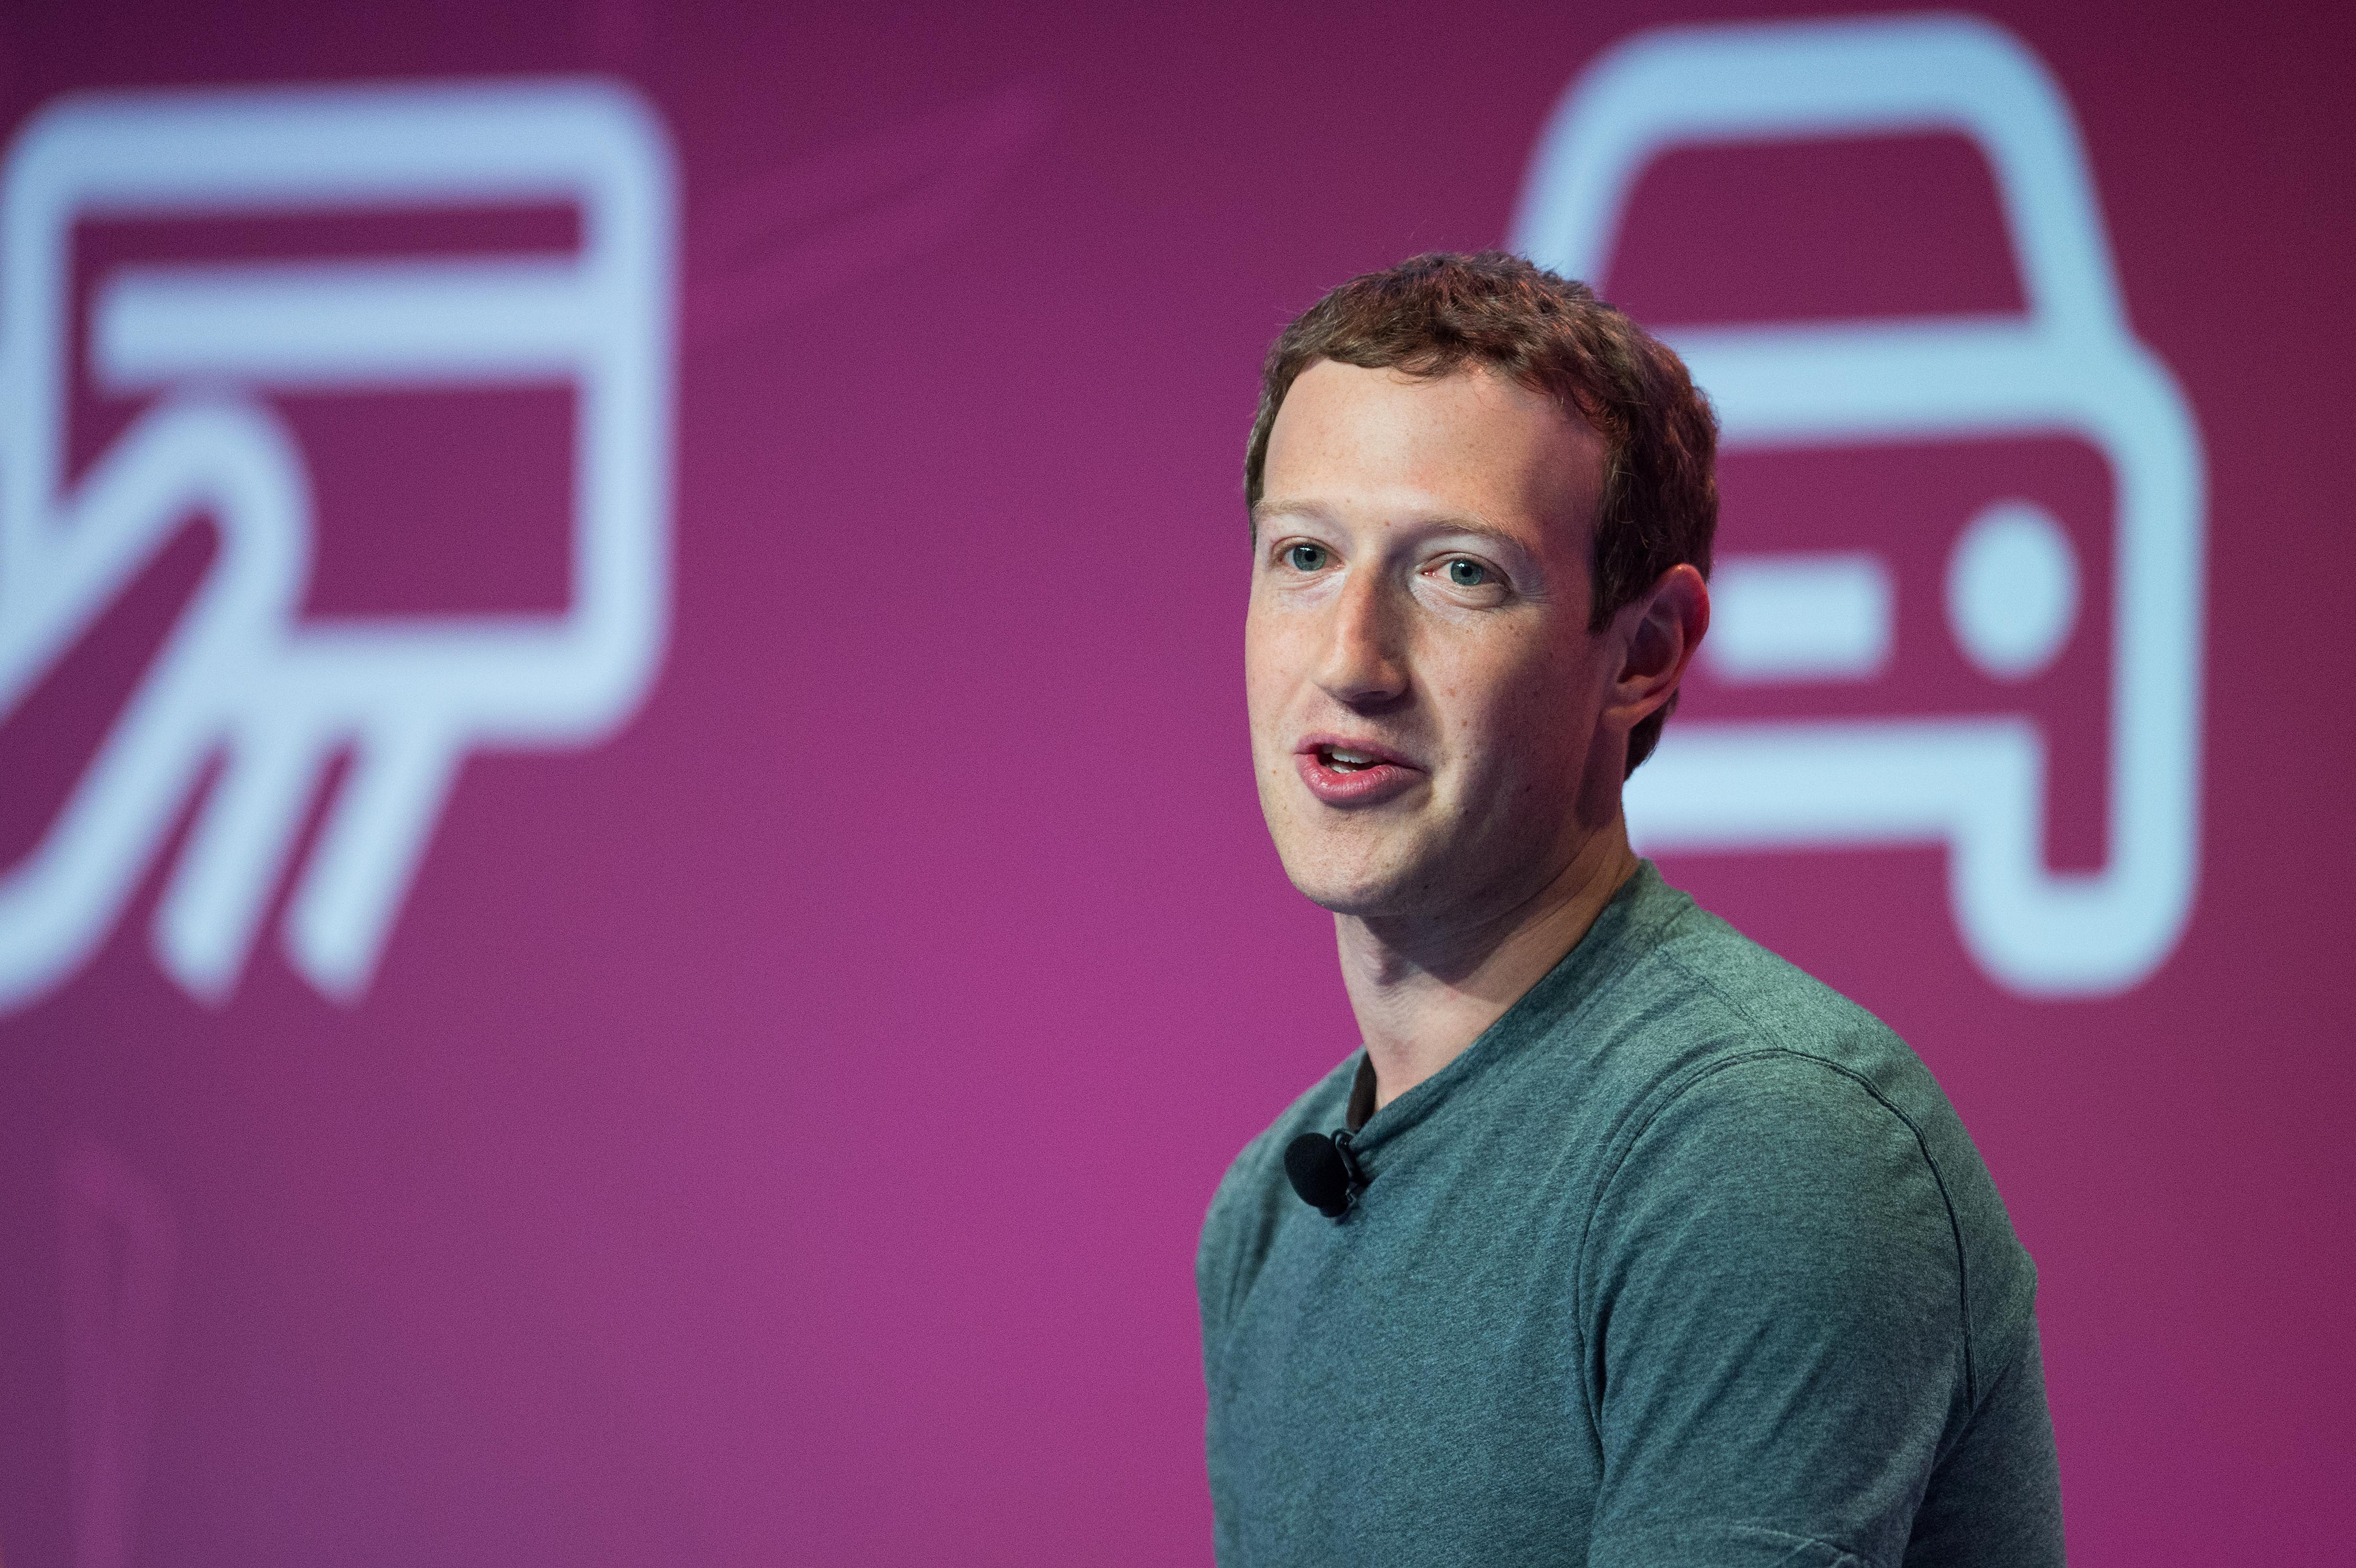 Founder and CEO of Facebook Mark Zuckerberg delivers his keynote conference on the opening day of the World Mobile Congress at the Fira Gran Via Complex on February 22, 2016 in Barcelona, Spain.